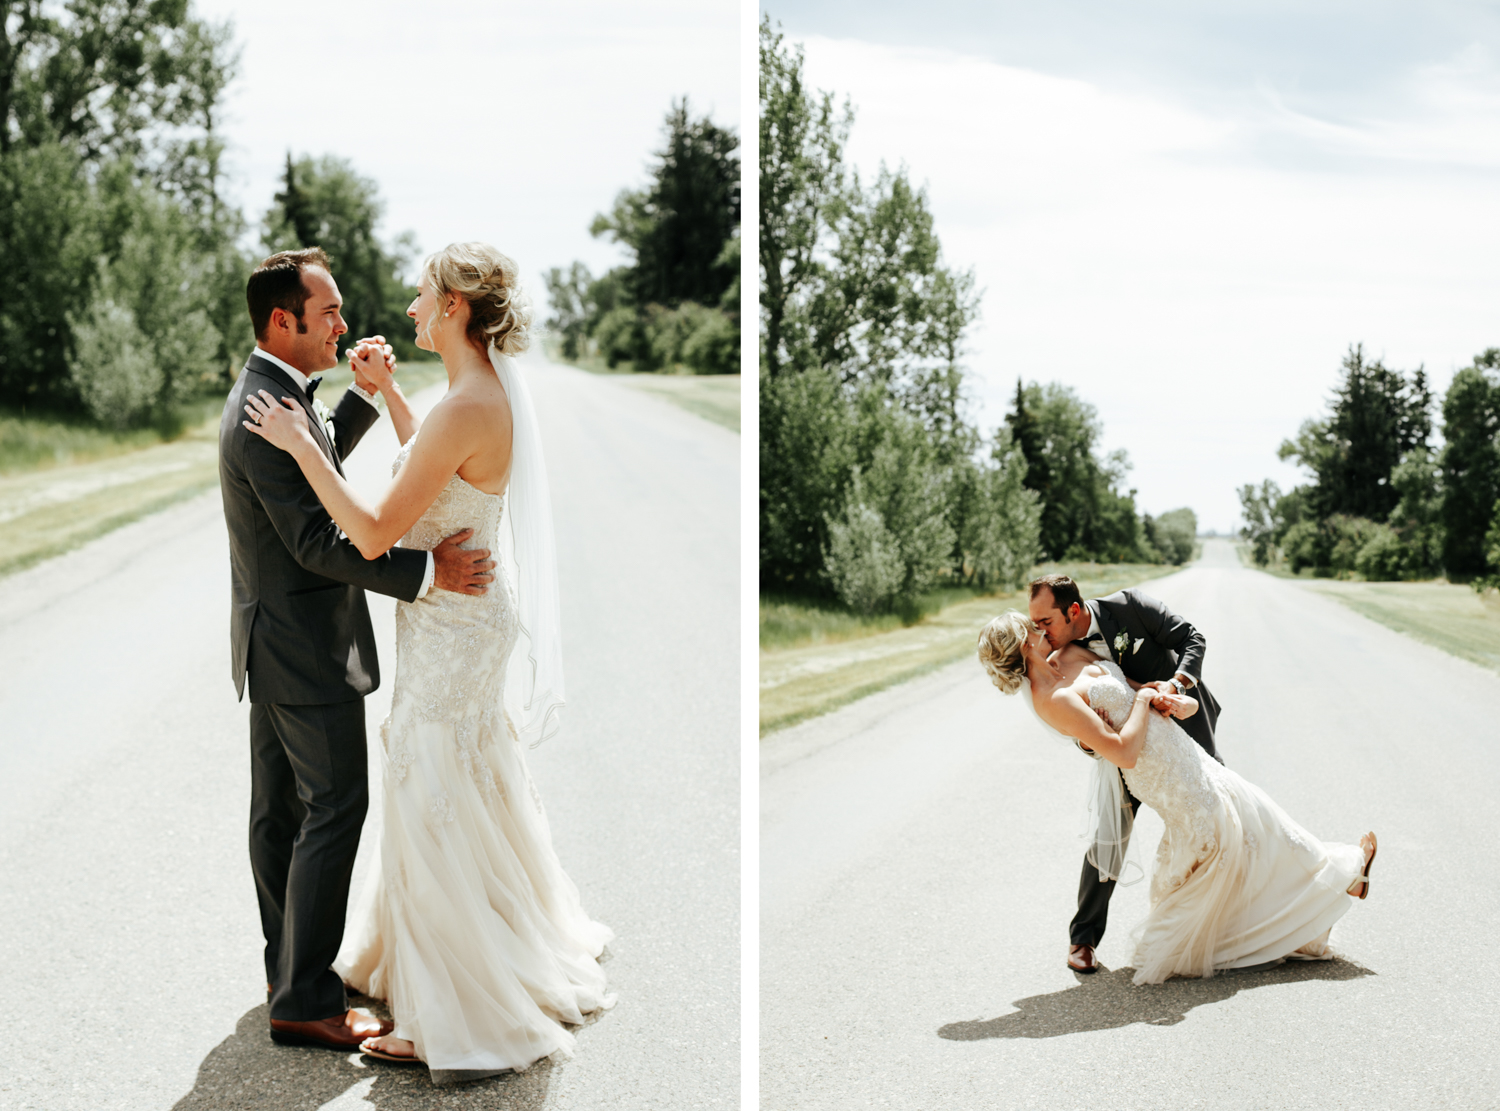 lethbridge-wedding-photographer-love-and-be-loved-photography-bailey-joel-lethbridge-wedding-picture-image-photo-74.jpg